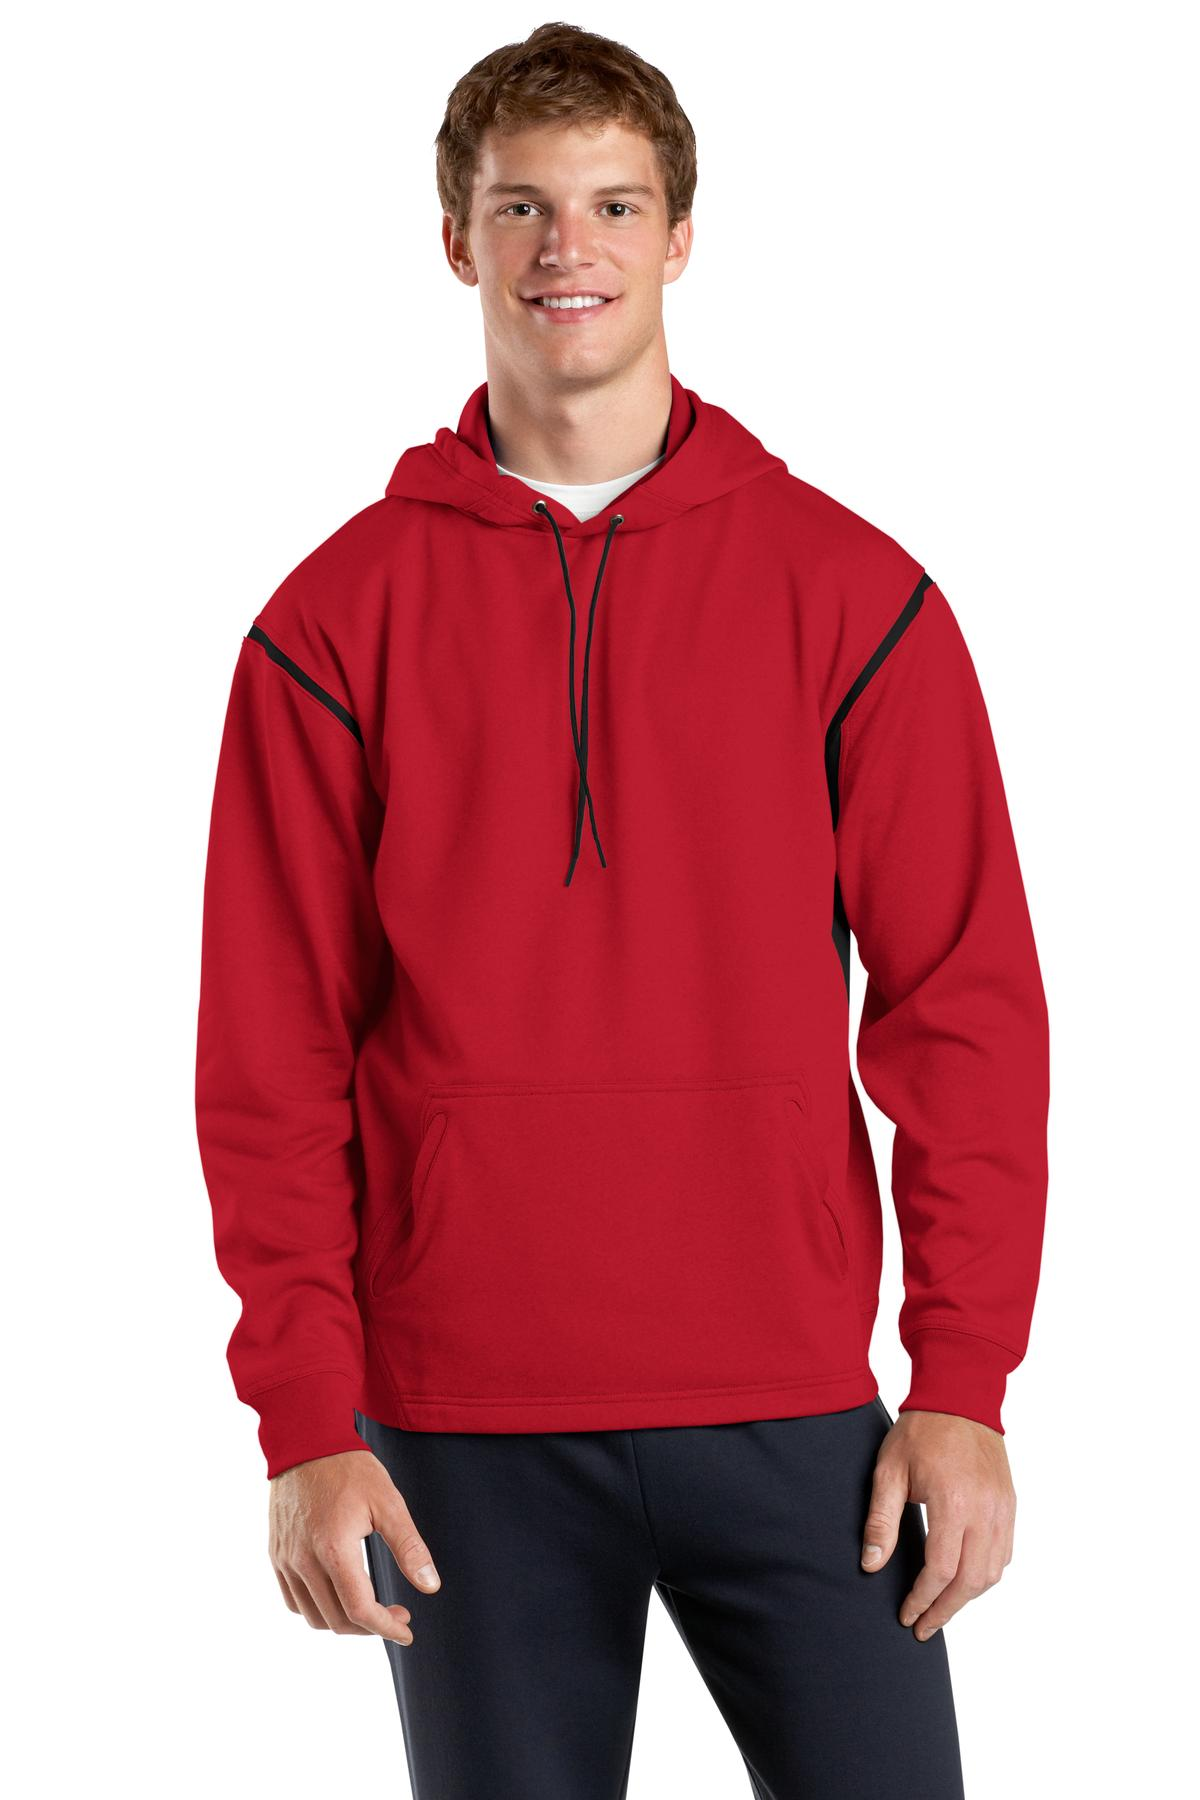 Sweatshirts-Fleece-Hooded-25